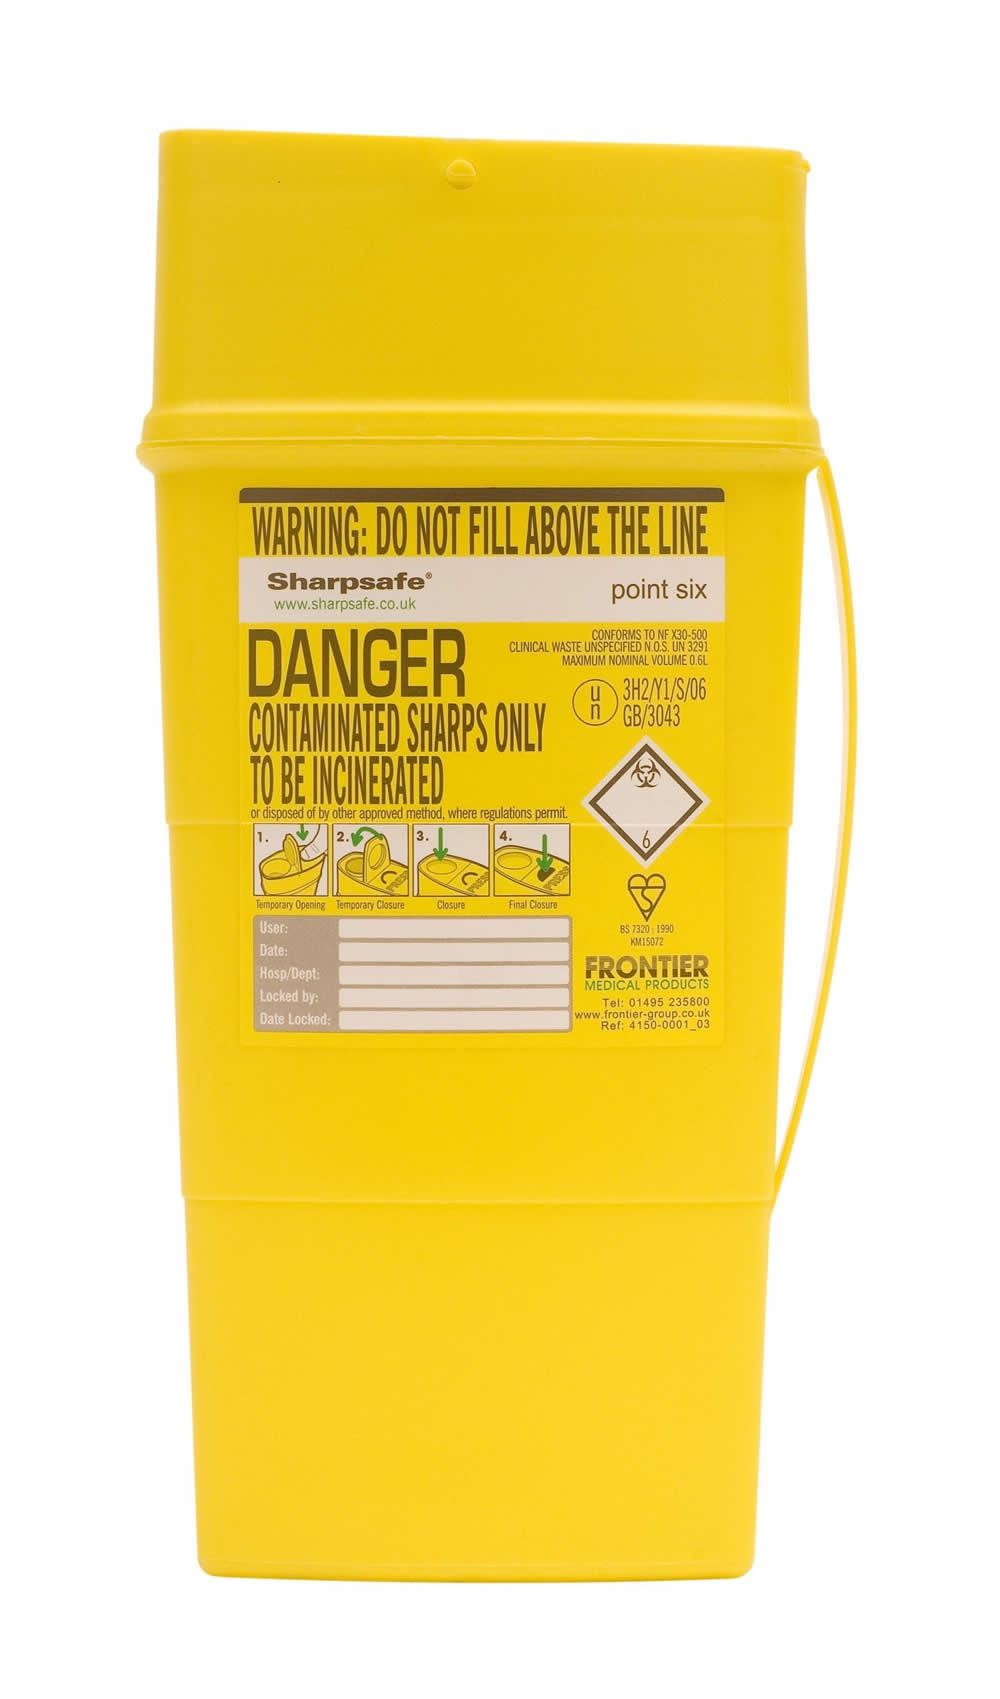 Sharpsafe Community Sharps Container 0.6L